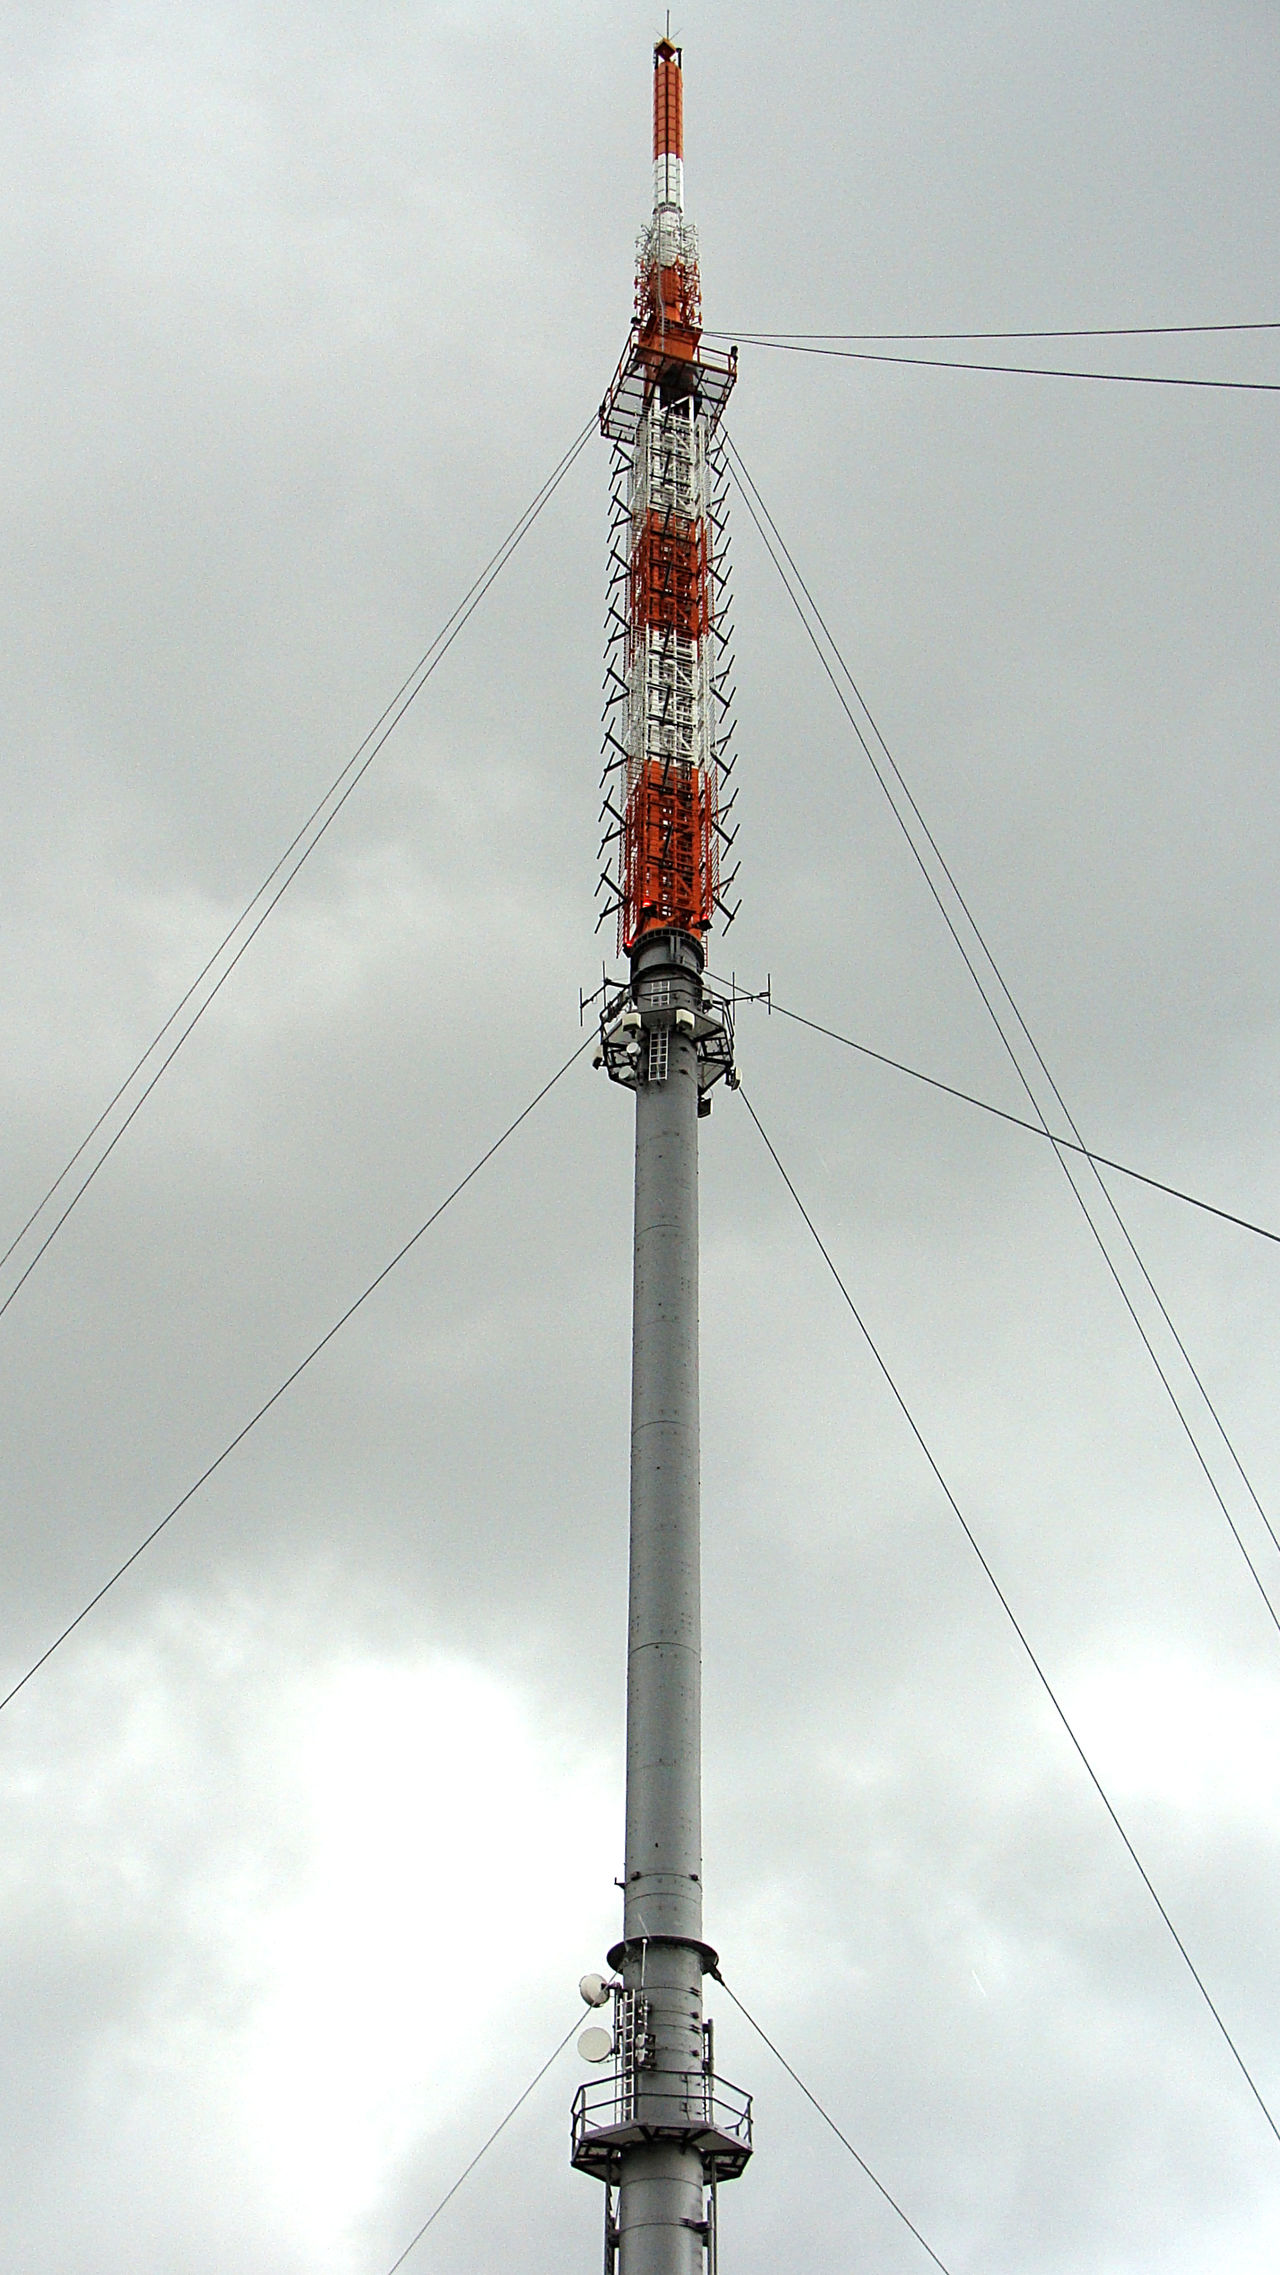 Built Structure Cable Cloud - Sky Communication Communications Tower Connection Day Low Angle View Outdoors Power Line  Sky Tall Technology Tower